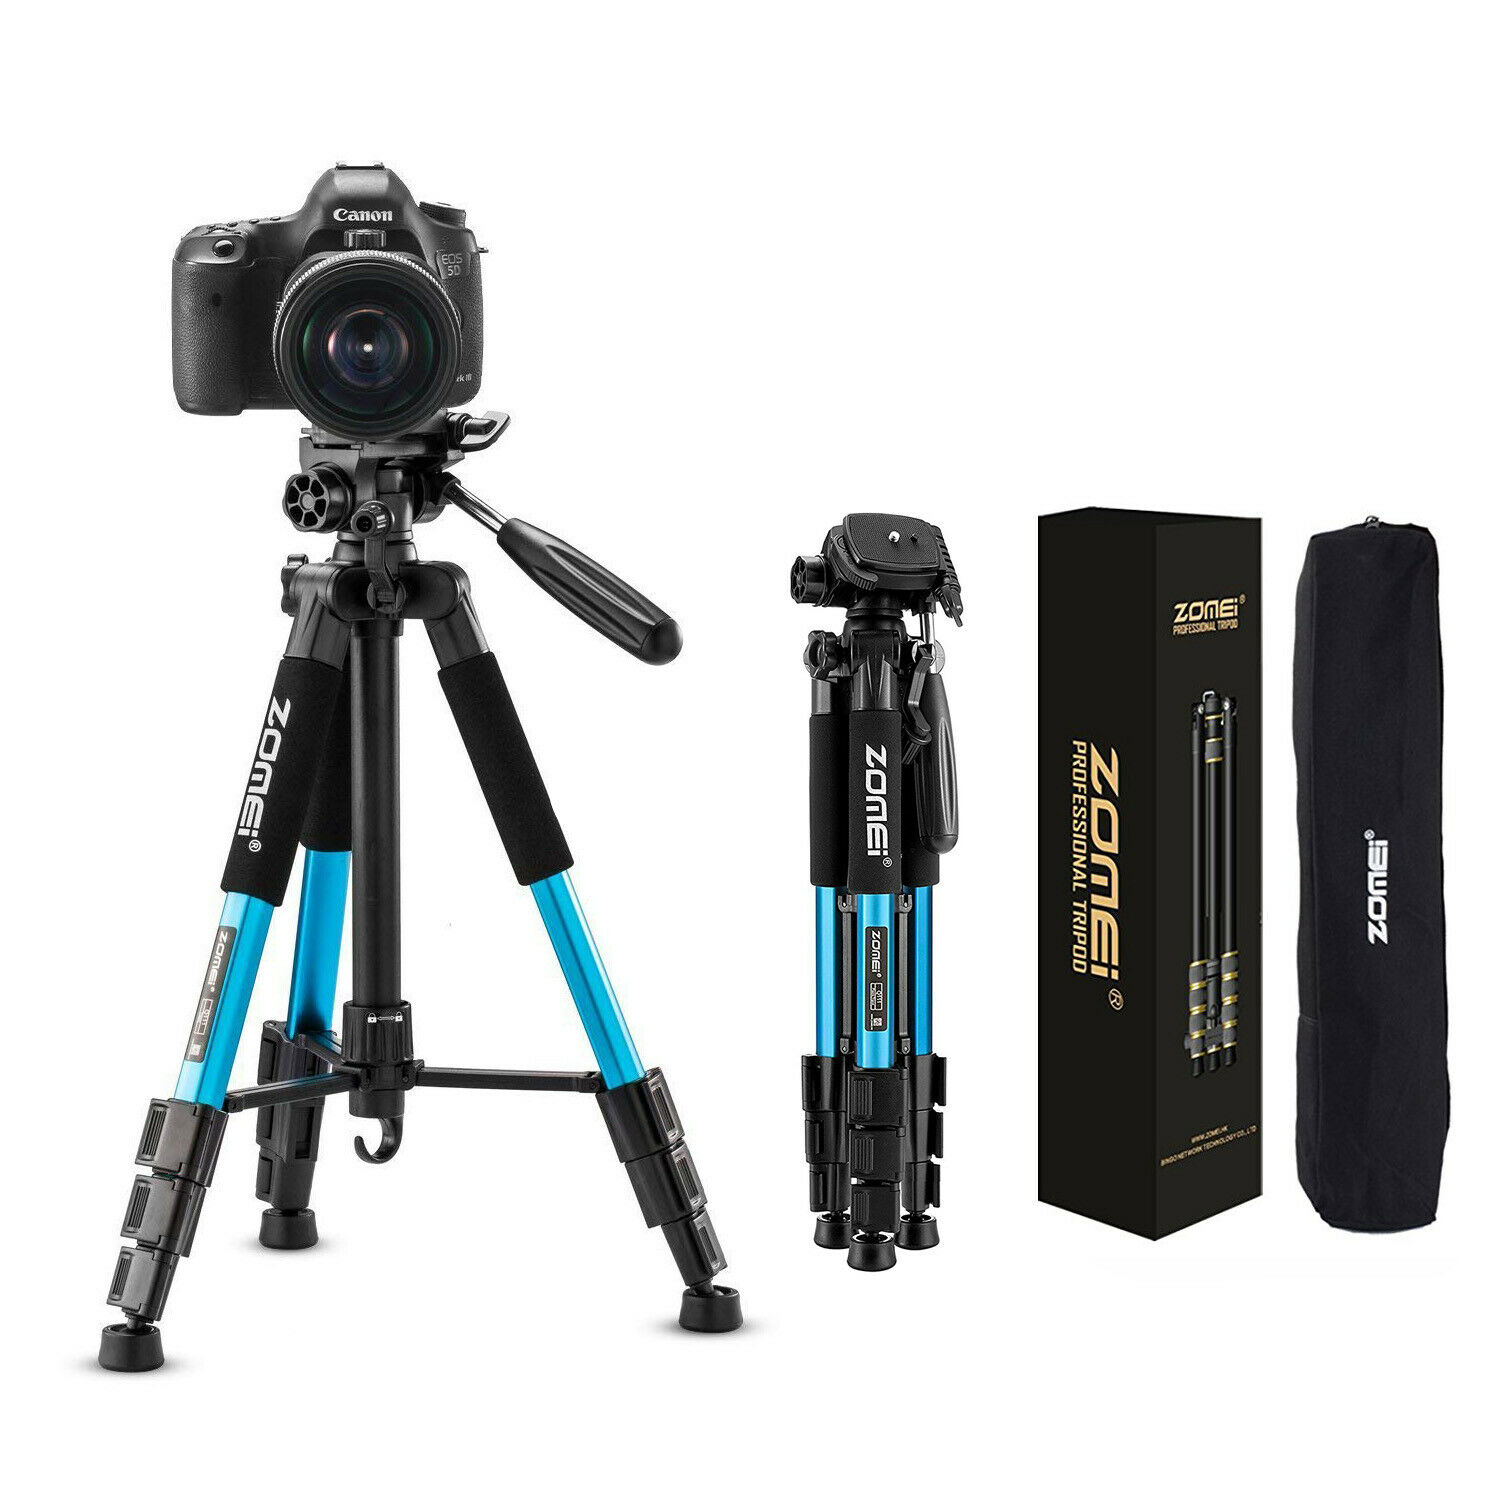 55 Professional Aluminum Alloy Camera Tripod for DSLR Canon Nikon Sony DV Video Camcorder with Carry Bag Red